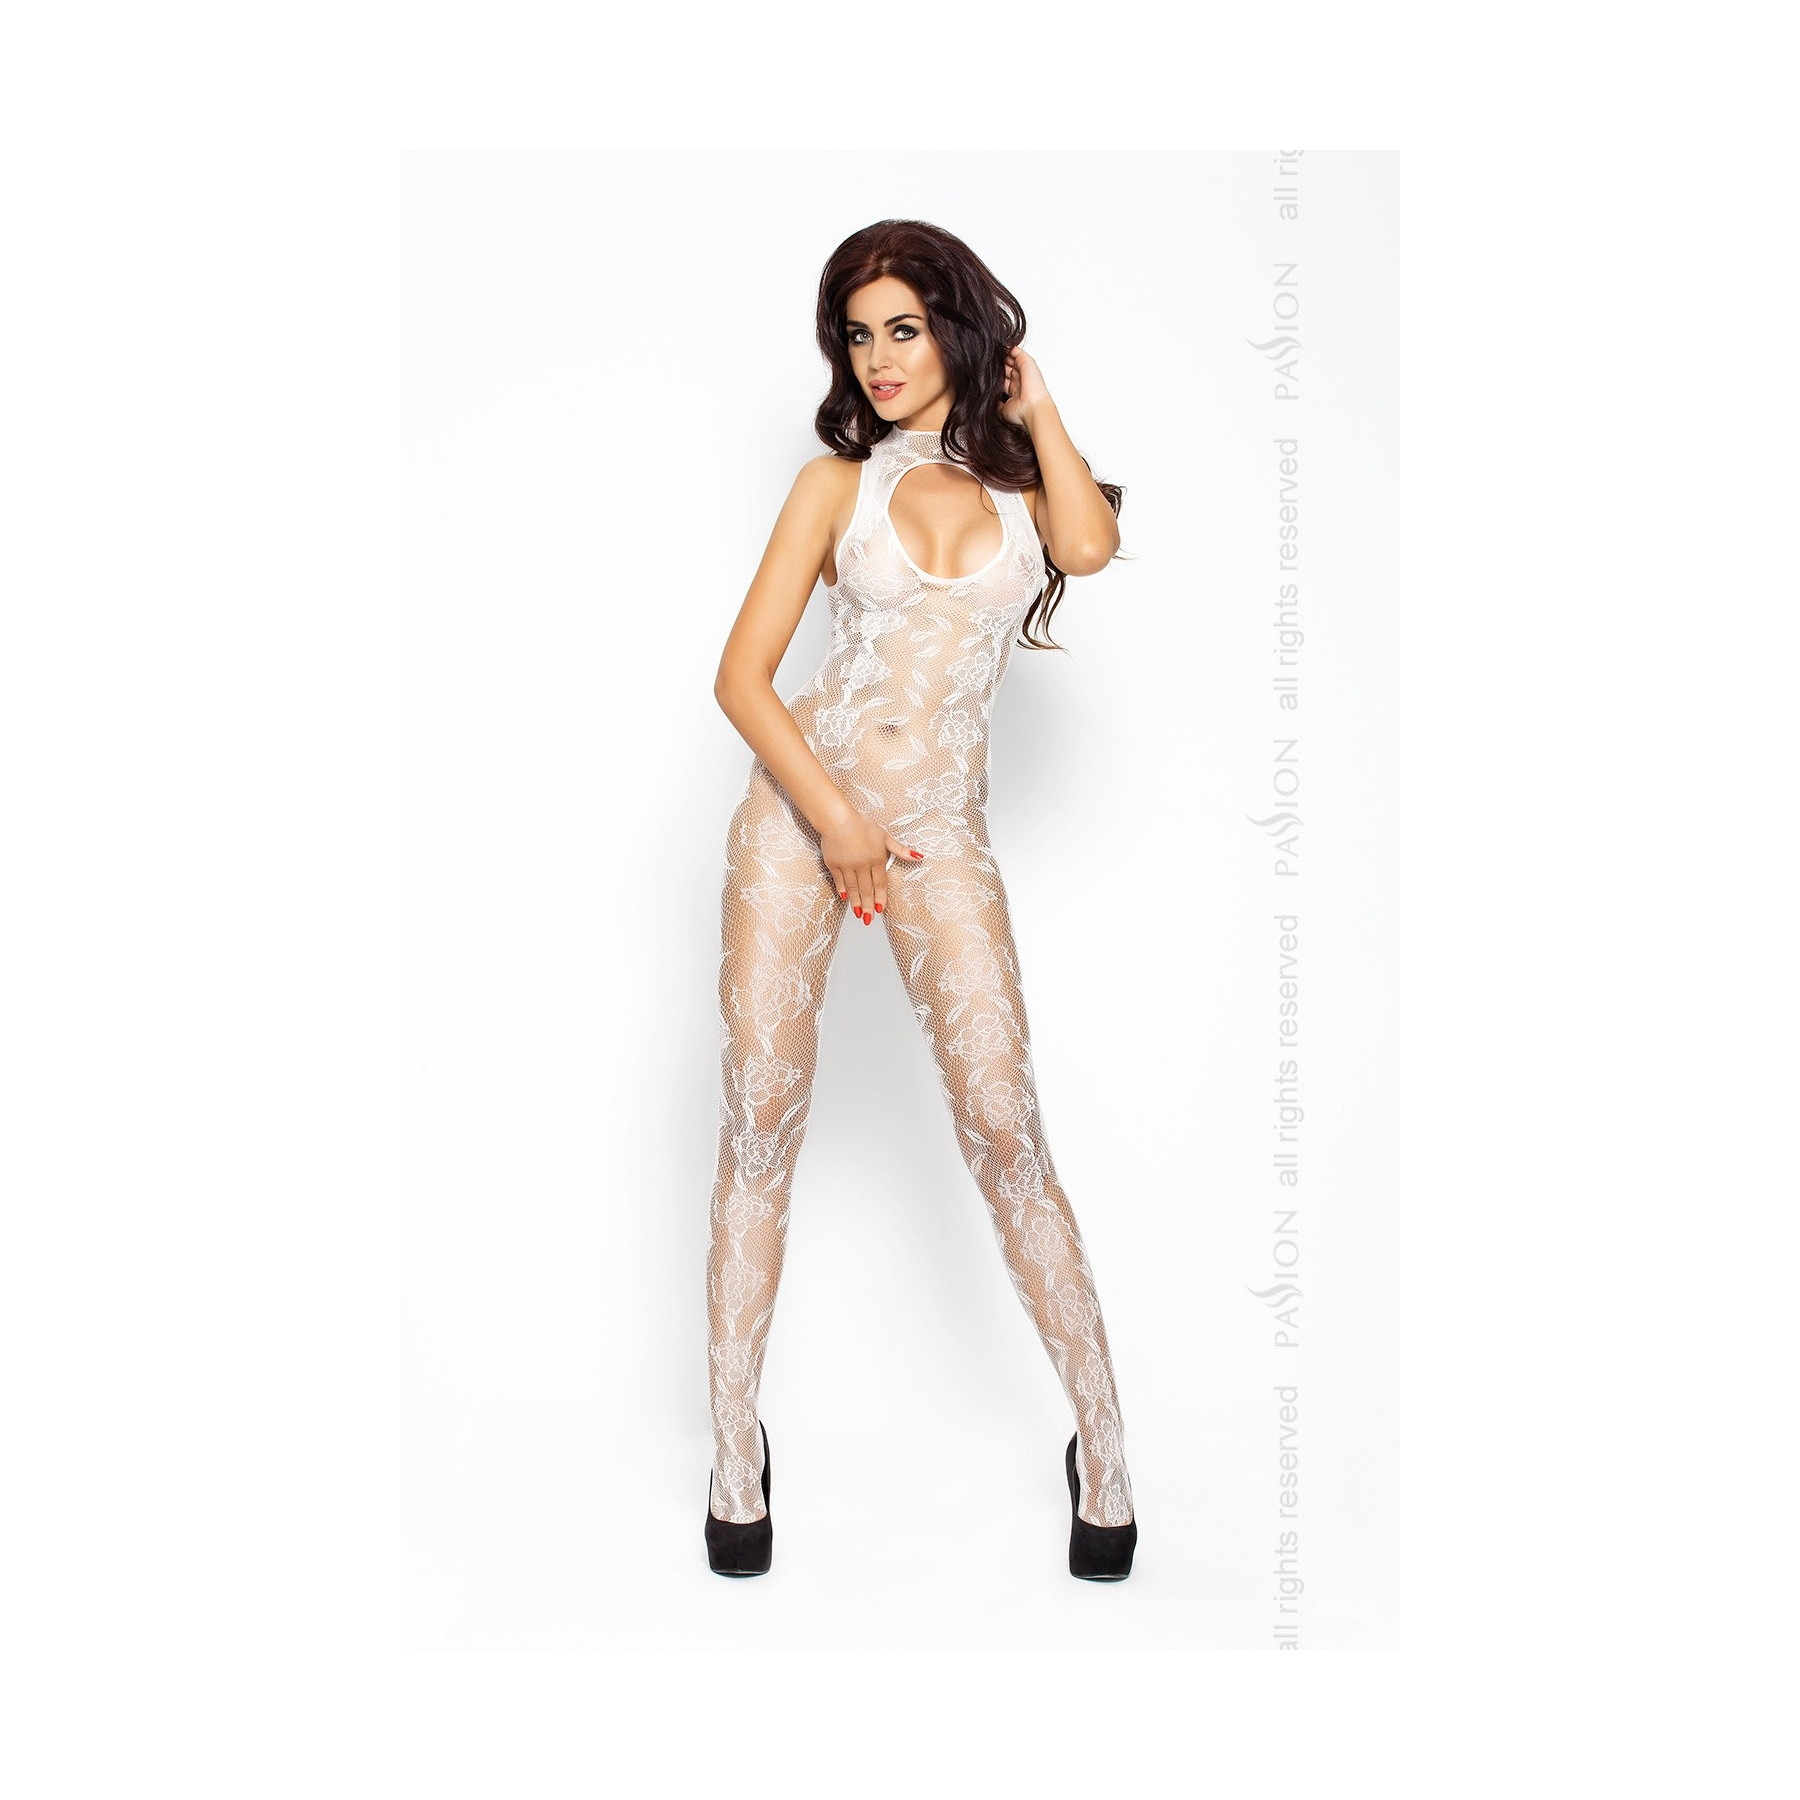 Bodystocking bianco con fantasia floreale Passion Lingerie